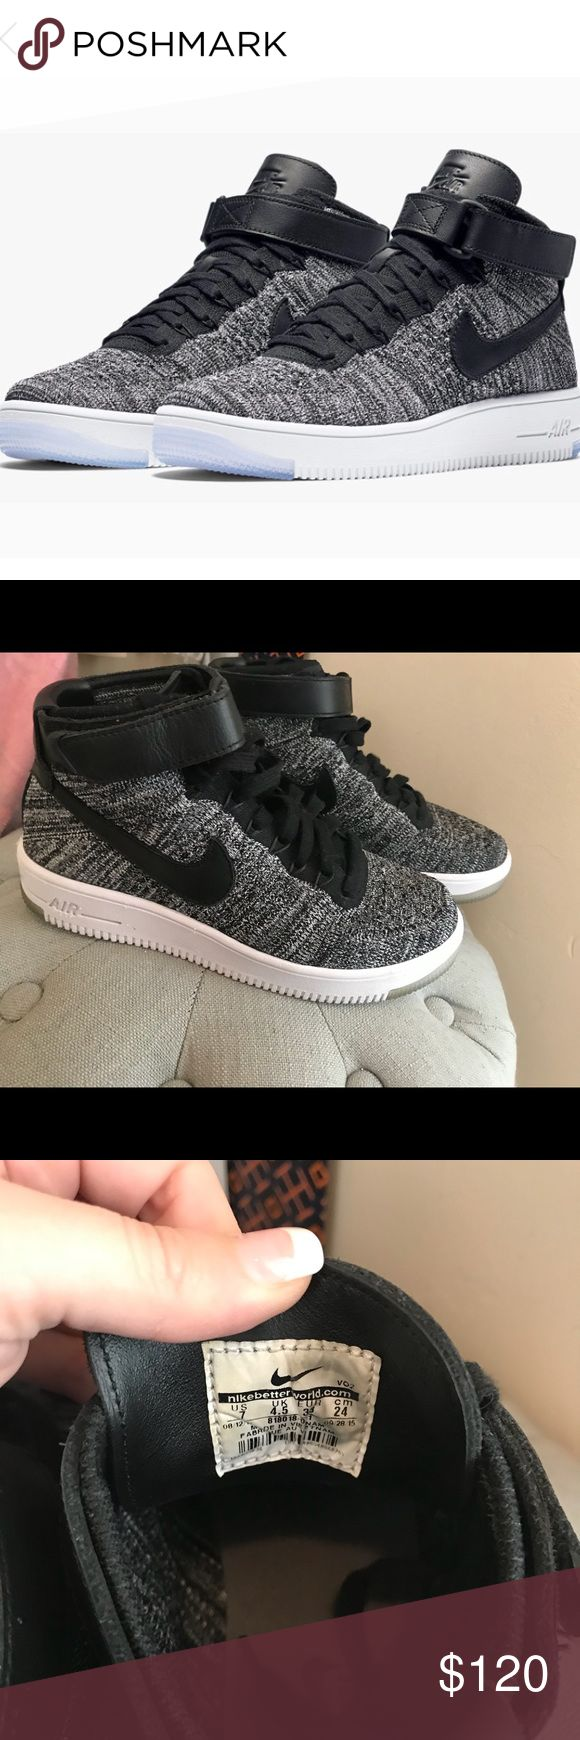 Nike Air Force 1 Encollage Ultra Flyknit Pour Lularoe